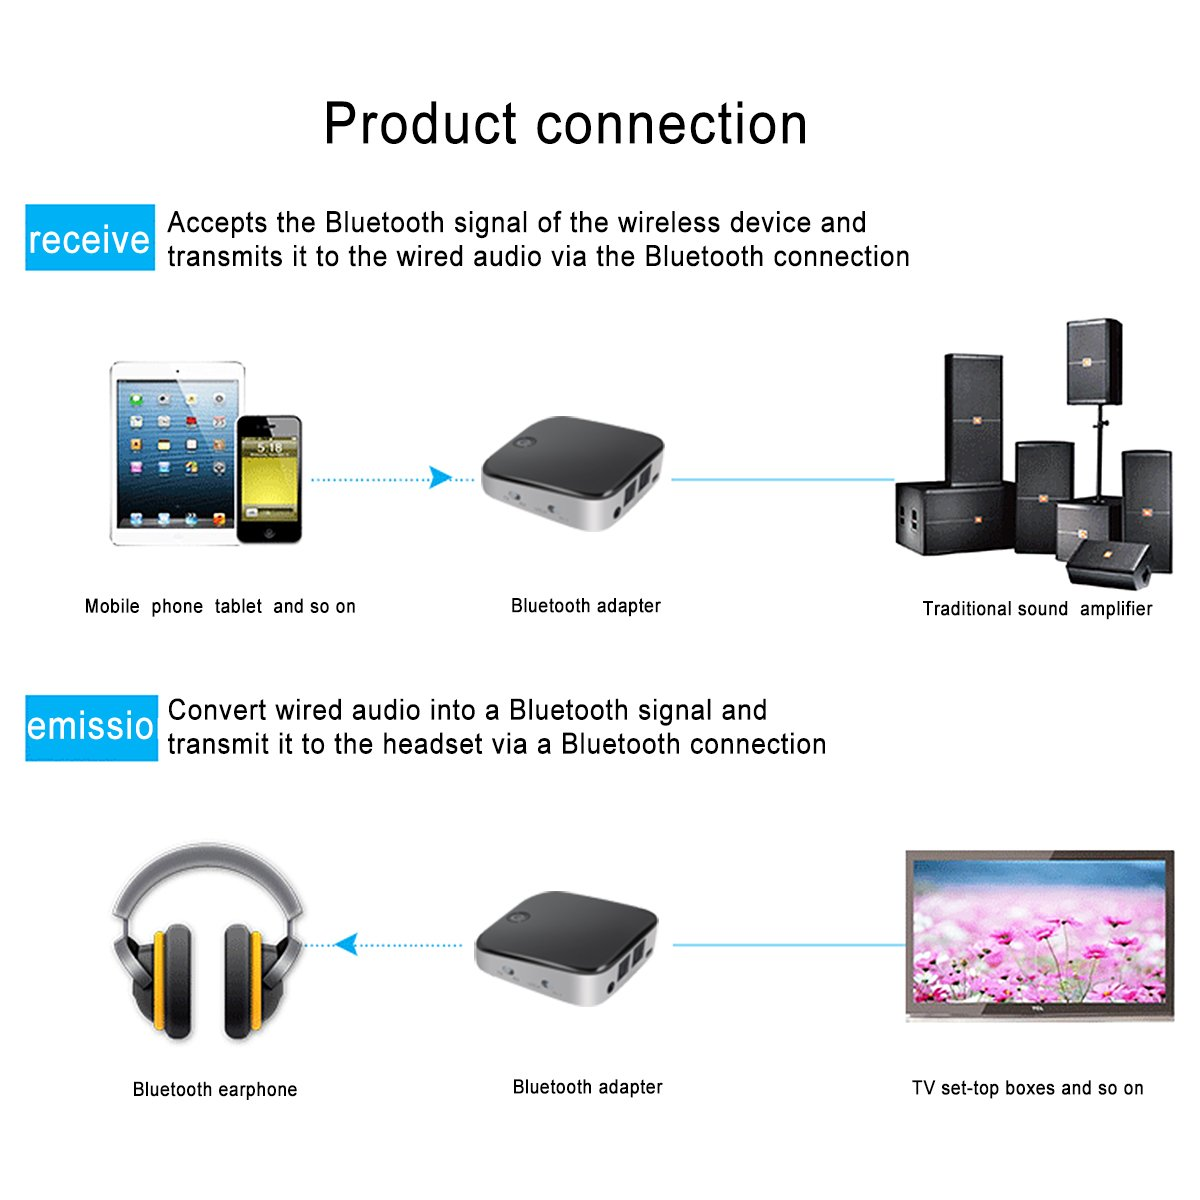 Bti 029 Bluetooth 41 Transmitter Receiver 2 In 1 Dongle Wiring Diagram Wireless Stereo Audio Adapter With Optical Toslink Spdif Aux 35mm Support Aptx Apt X